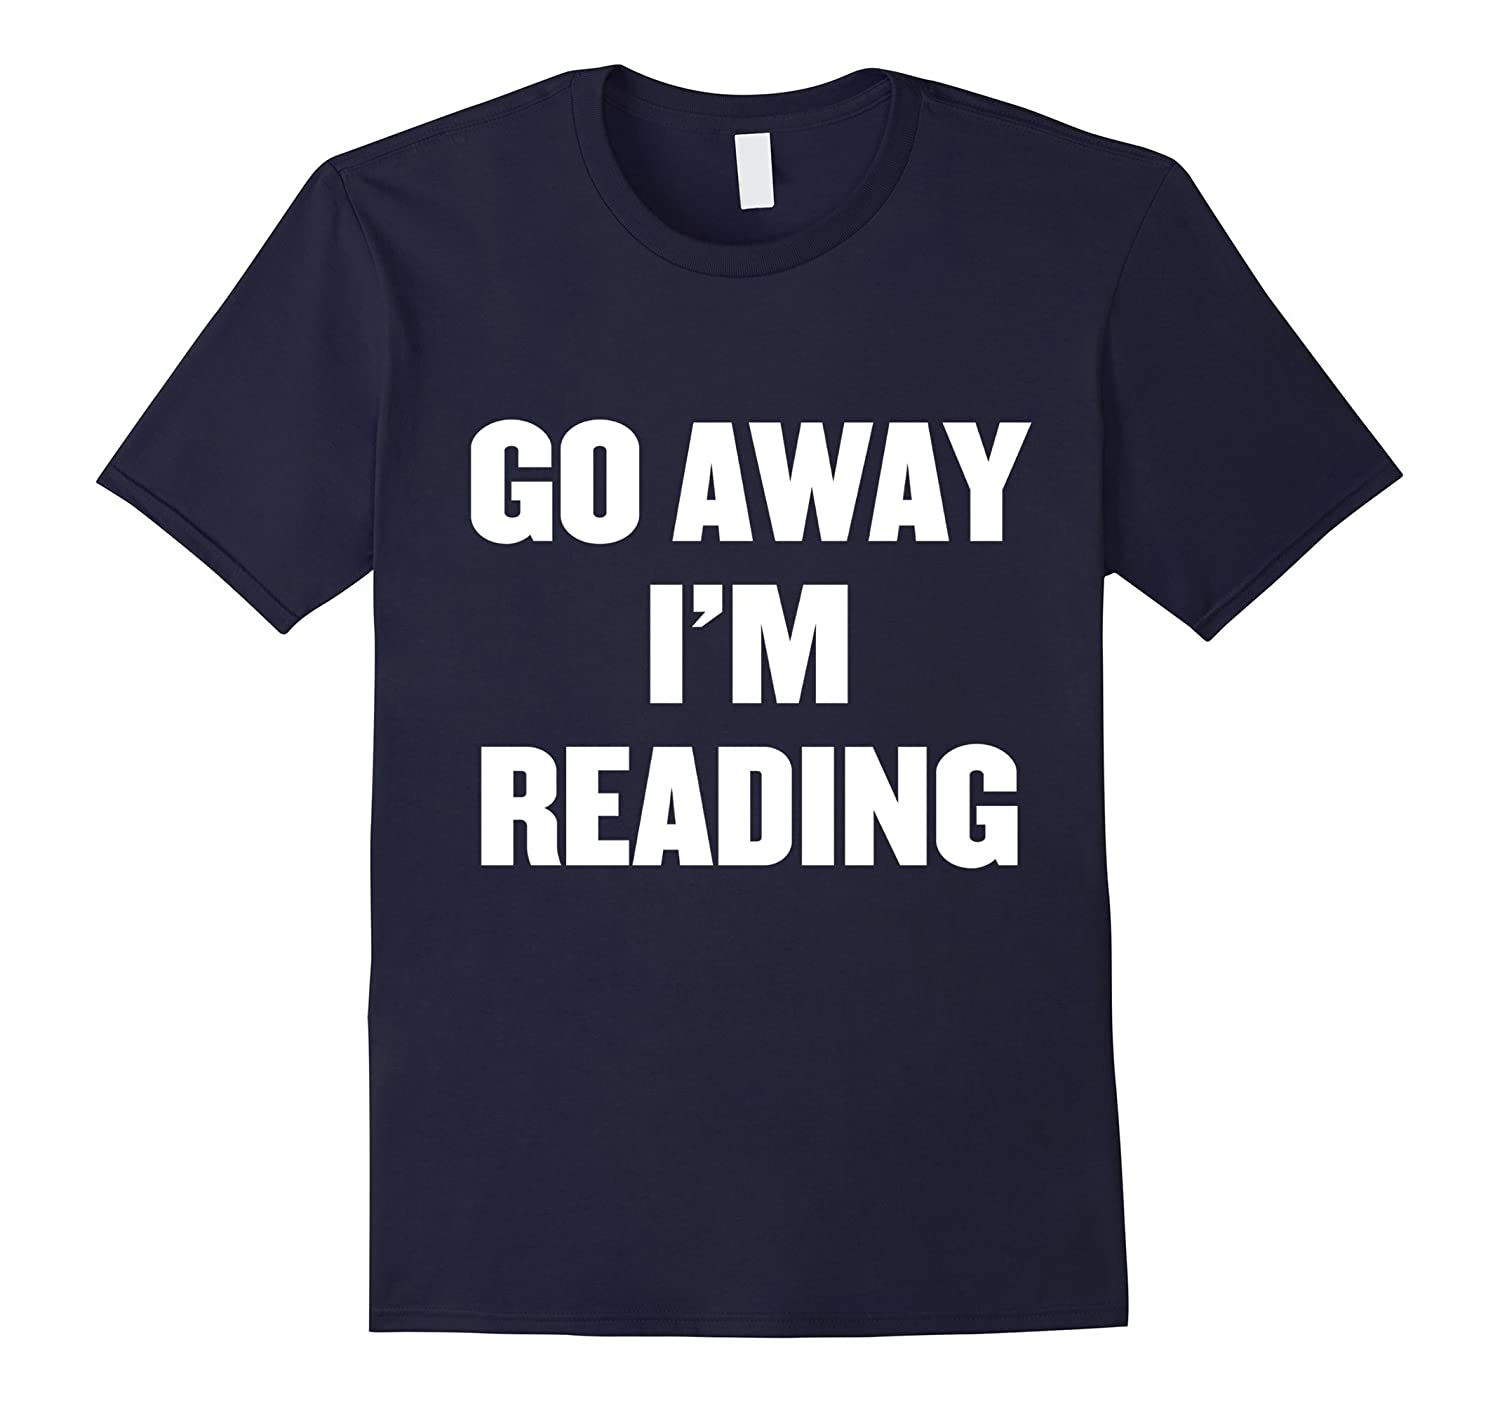 Go away i'm reading t shirt-FL